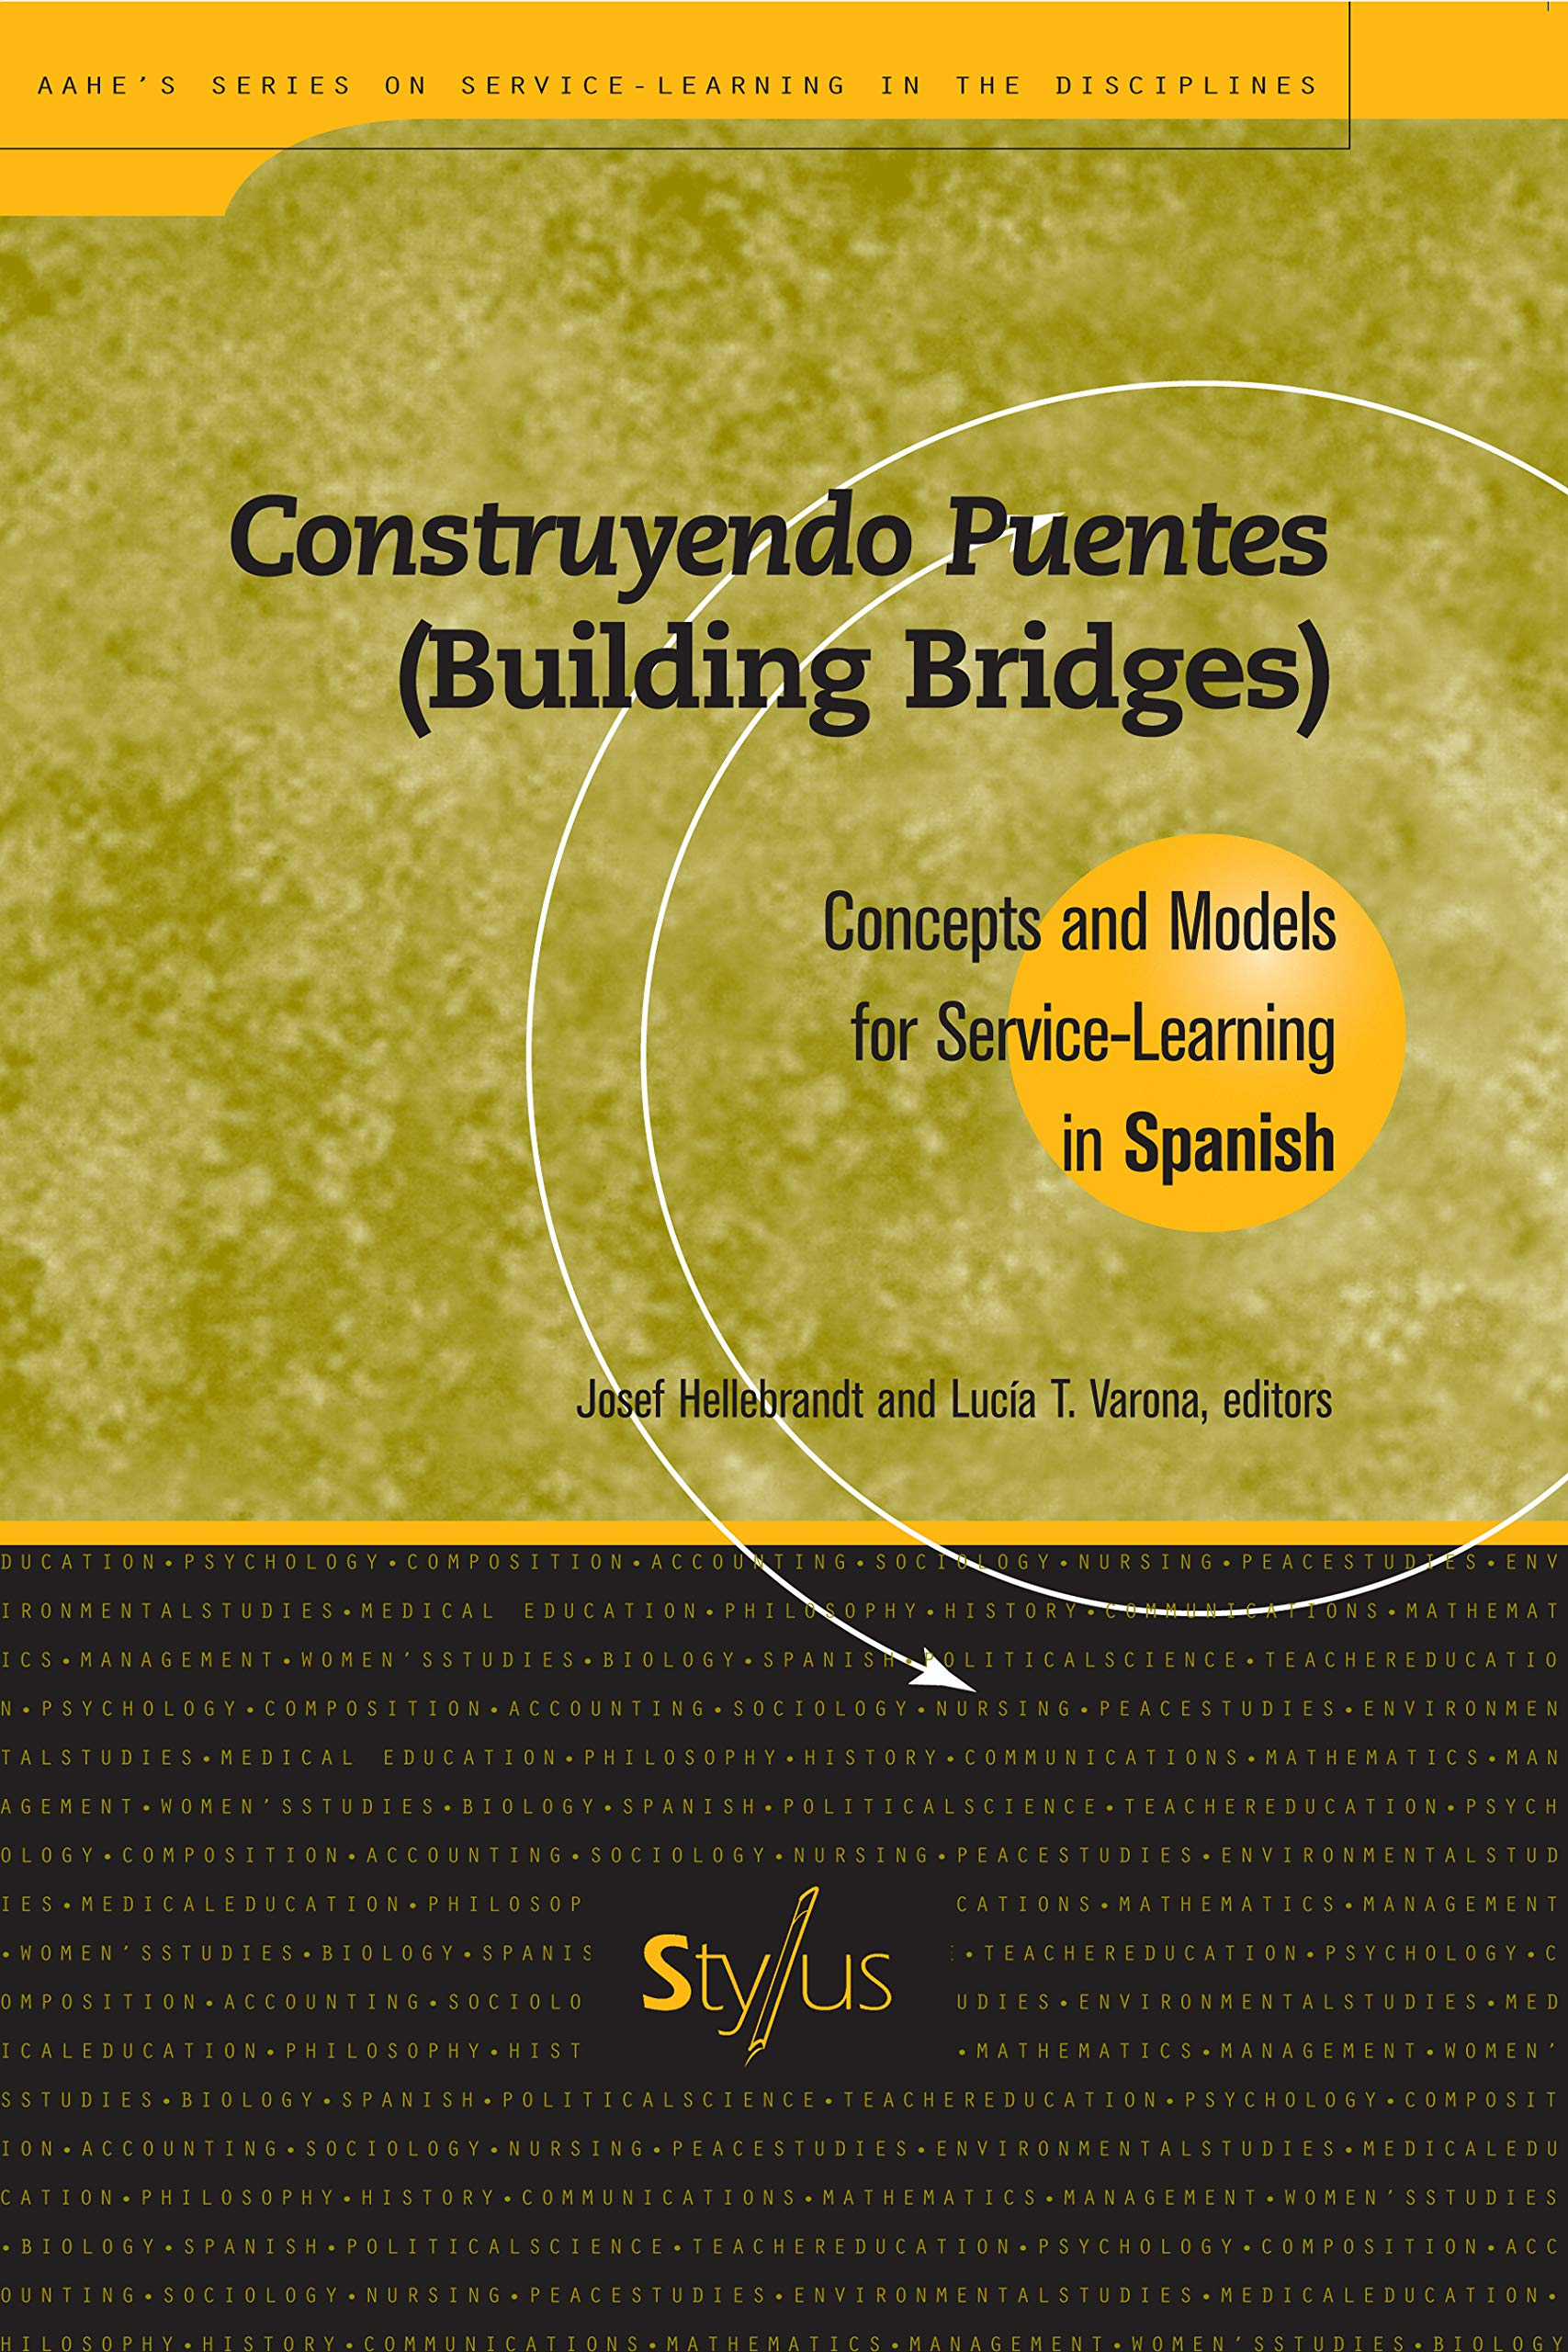 Construyendo Puentes Building Bridges Concepts And Models For Service Learning In Spanish Higher Education Hellebrandt Josef Varona Lucia T Chaves Tessner Carmen 9781563770227 Amazon Com Books